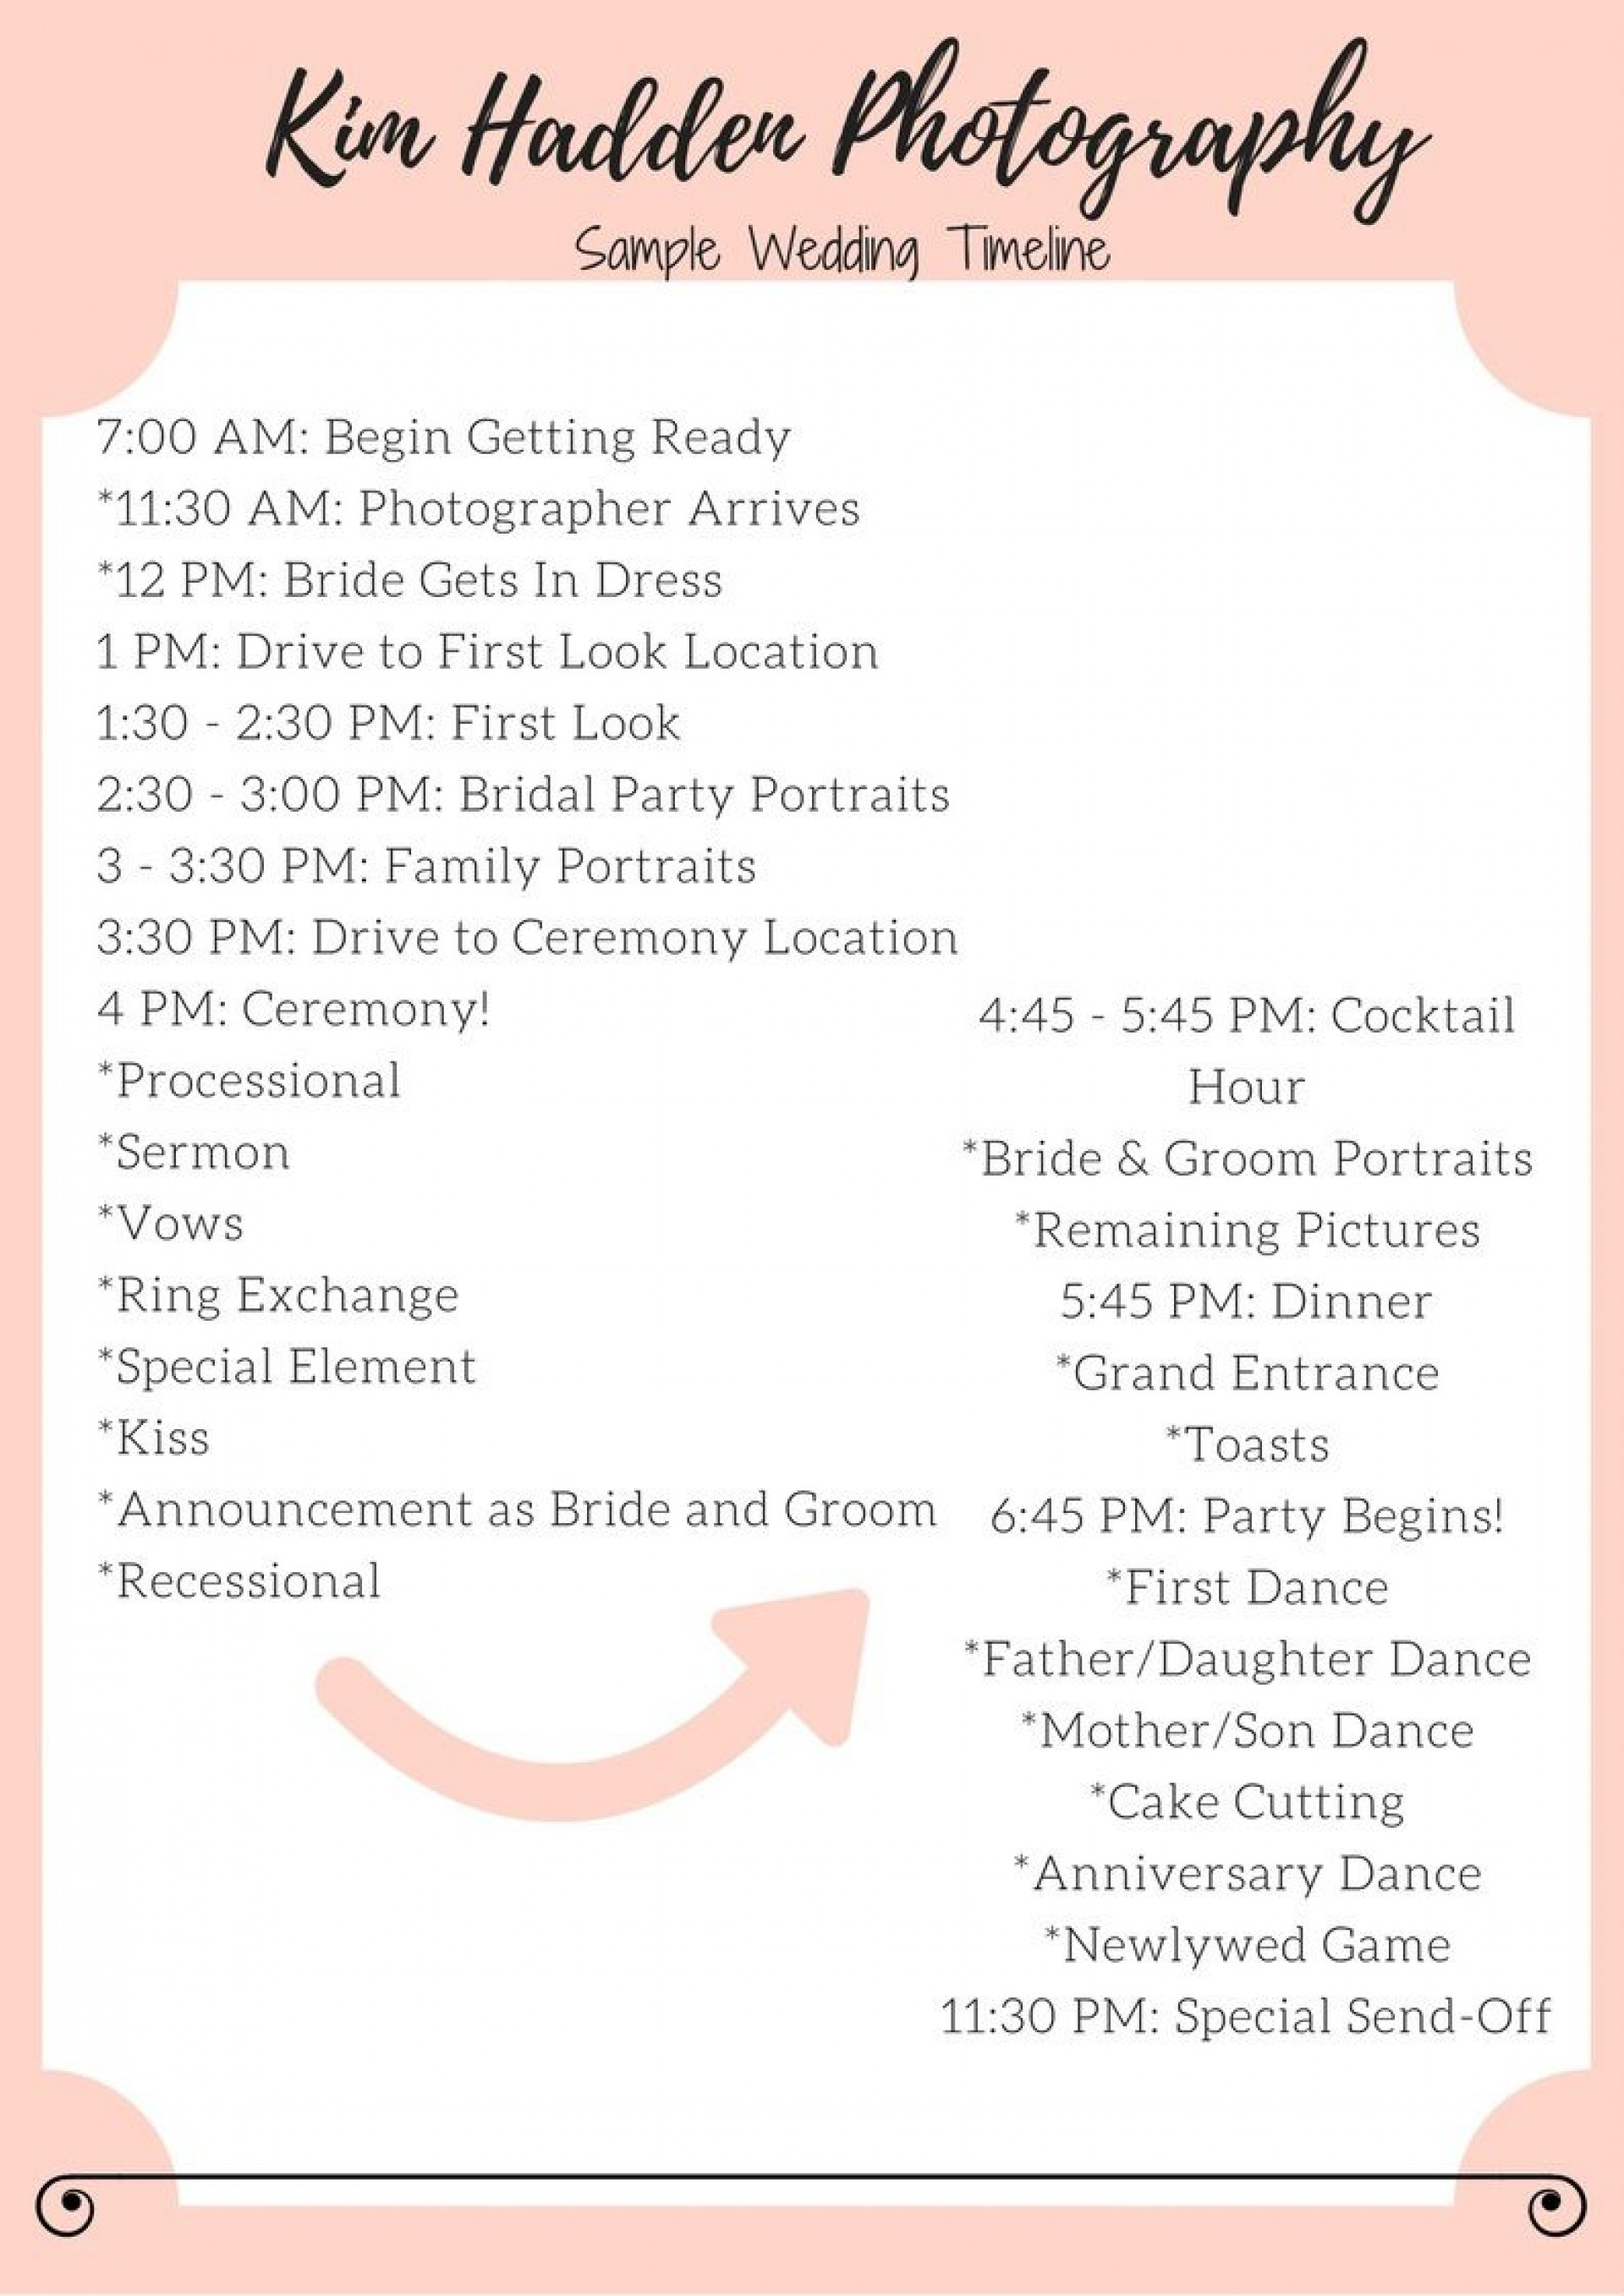 004 Outstanding Wedding Timeline Template Free Download Highest Clarity 1920